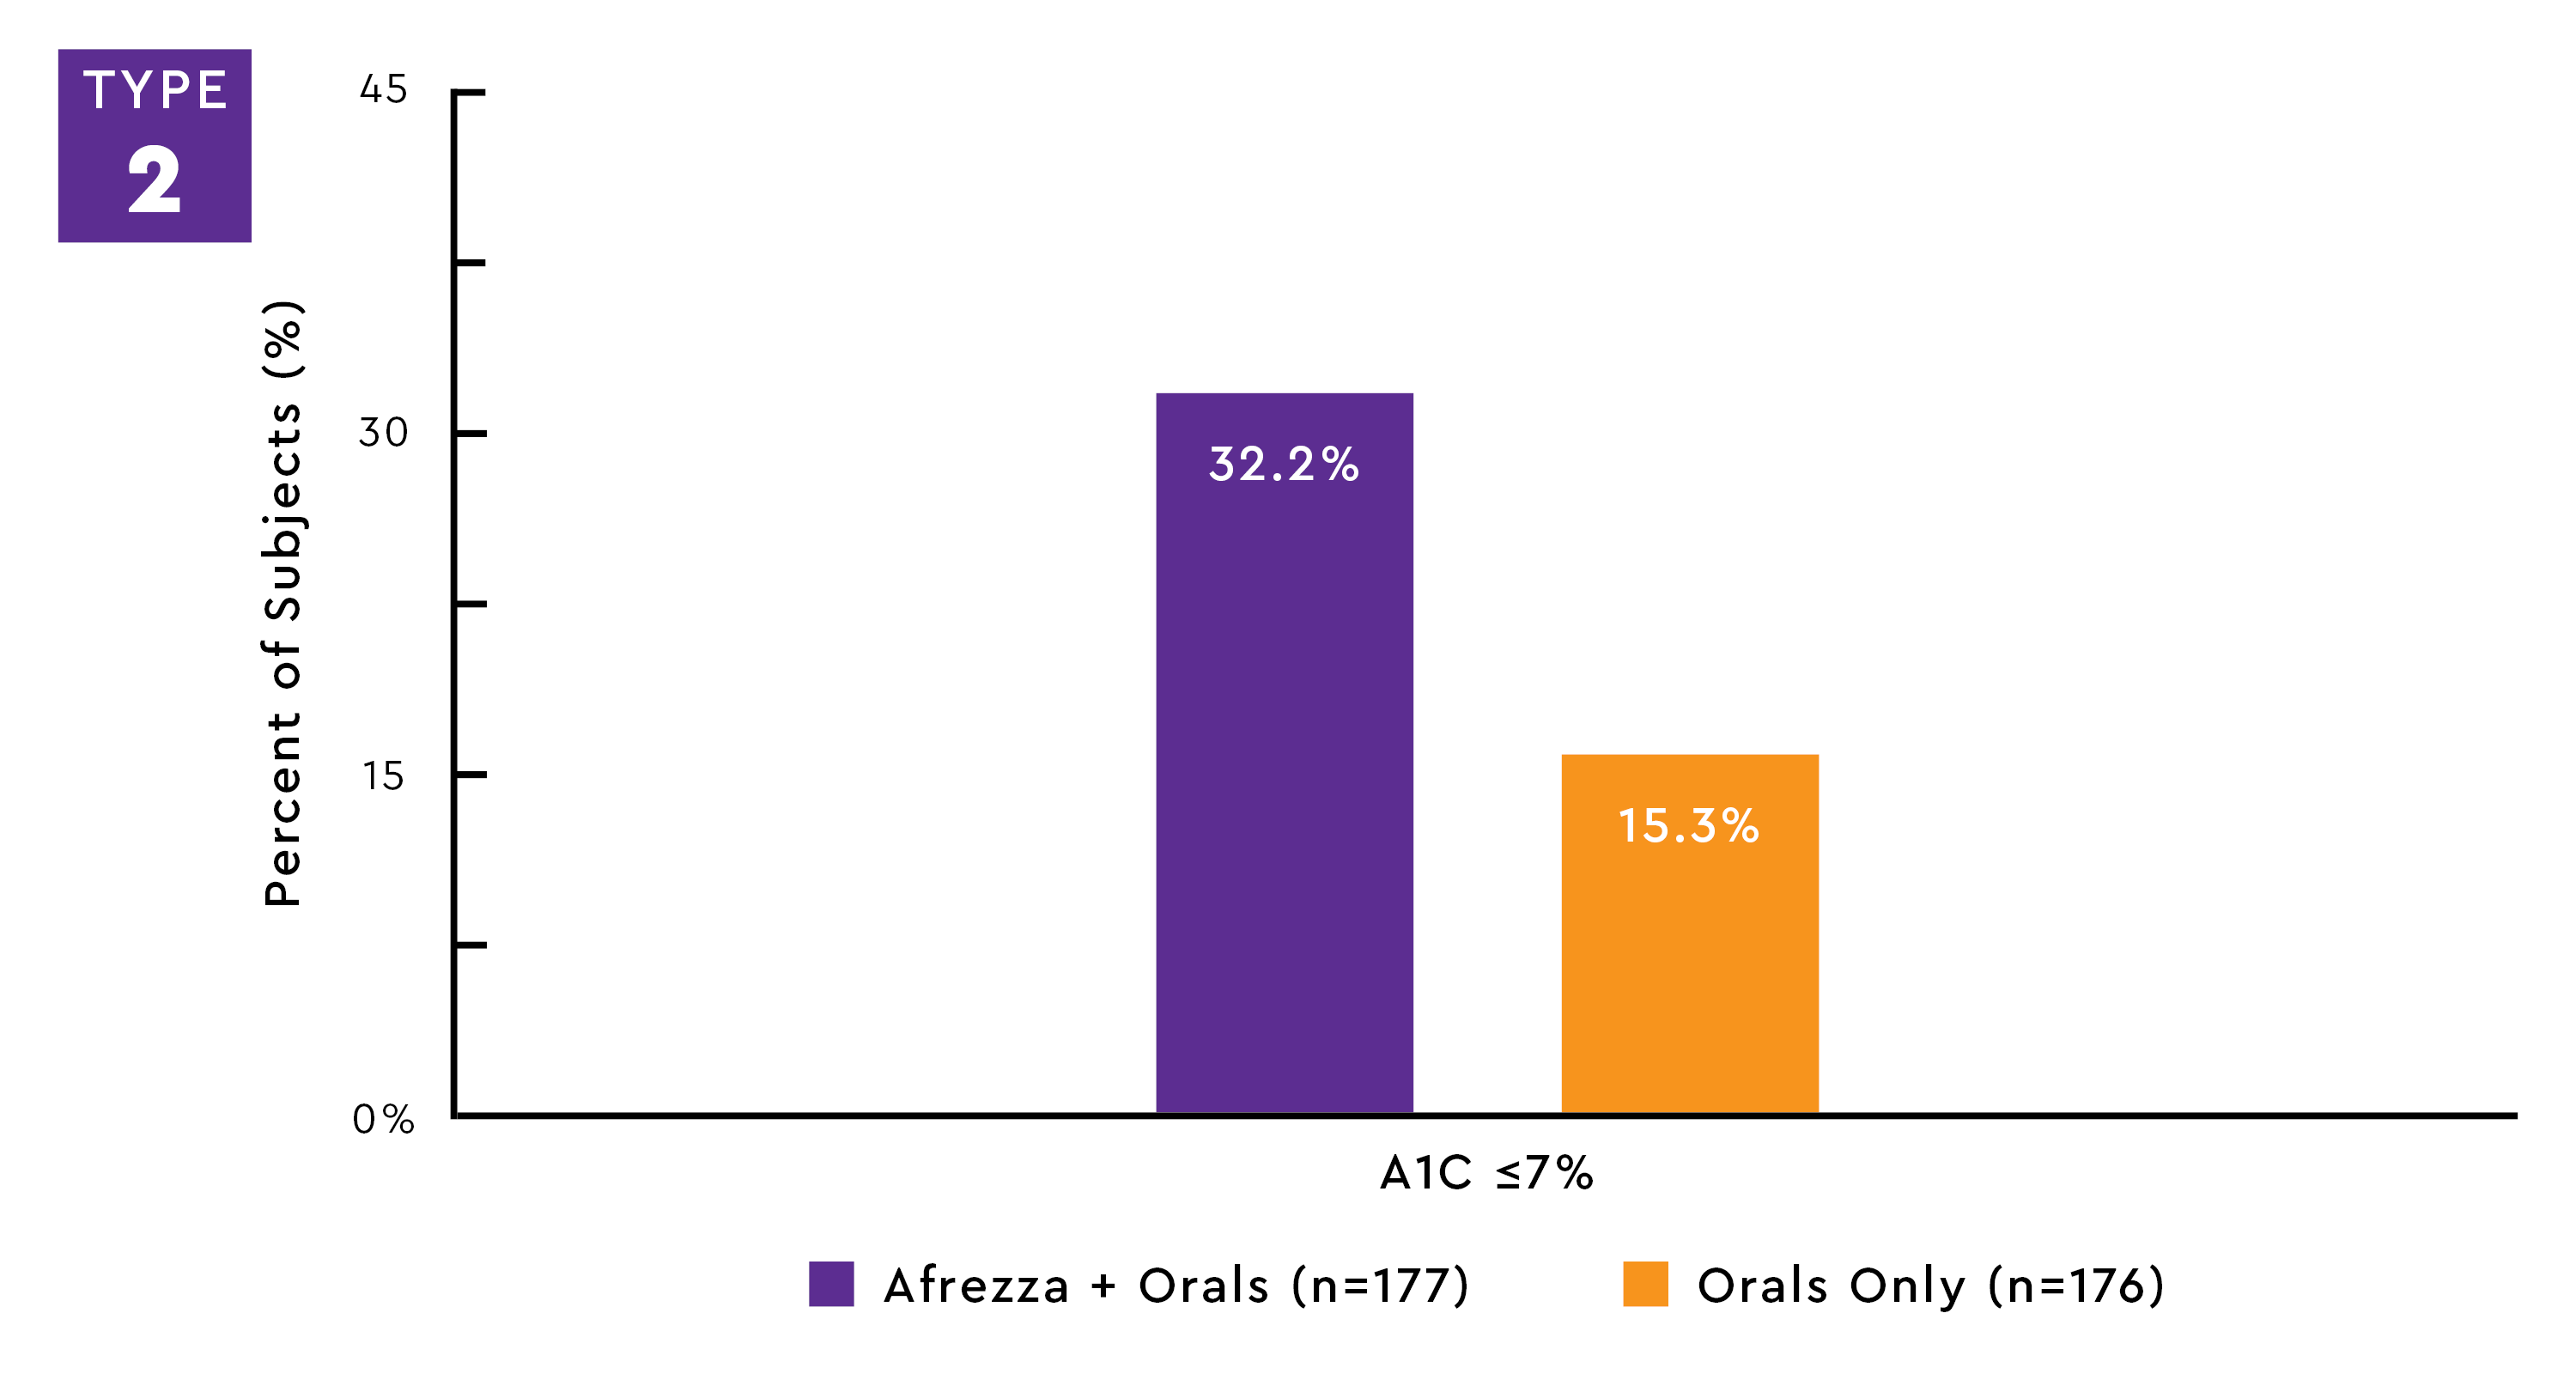 ADDING AFREZZA SIGNIFICANTLY REDUCED A1C LEVELS COMPARED TO OAS ALONE10